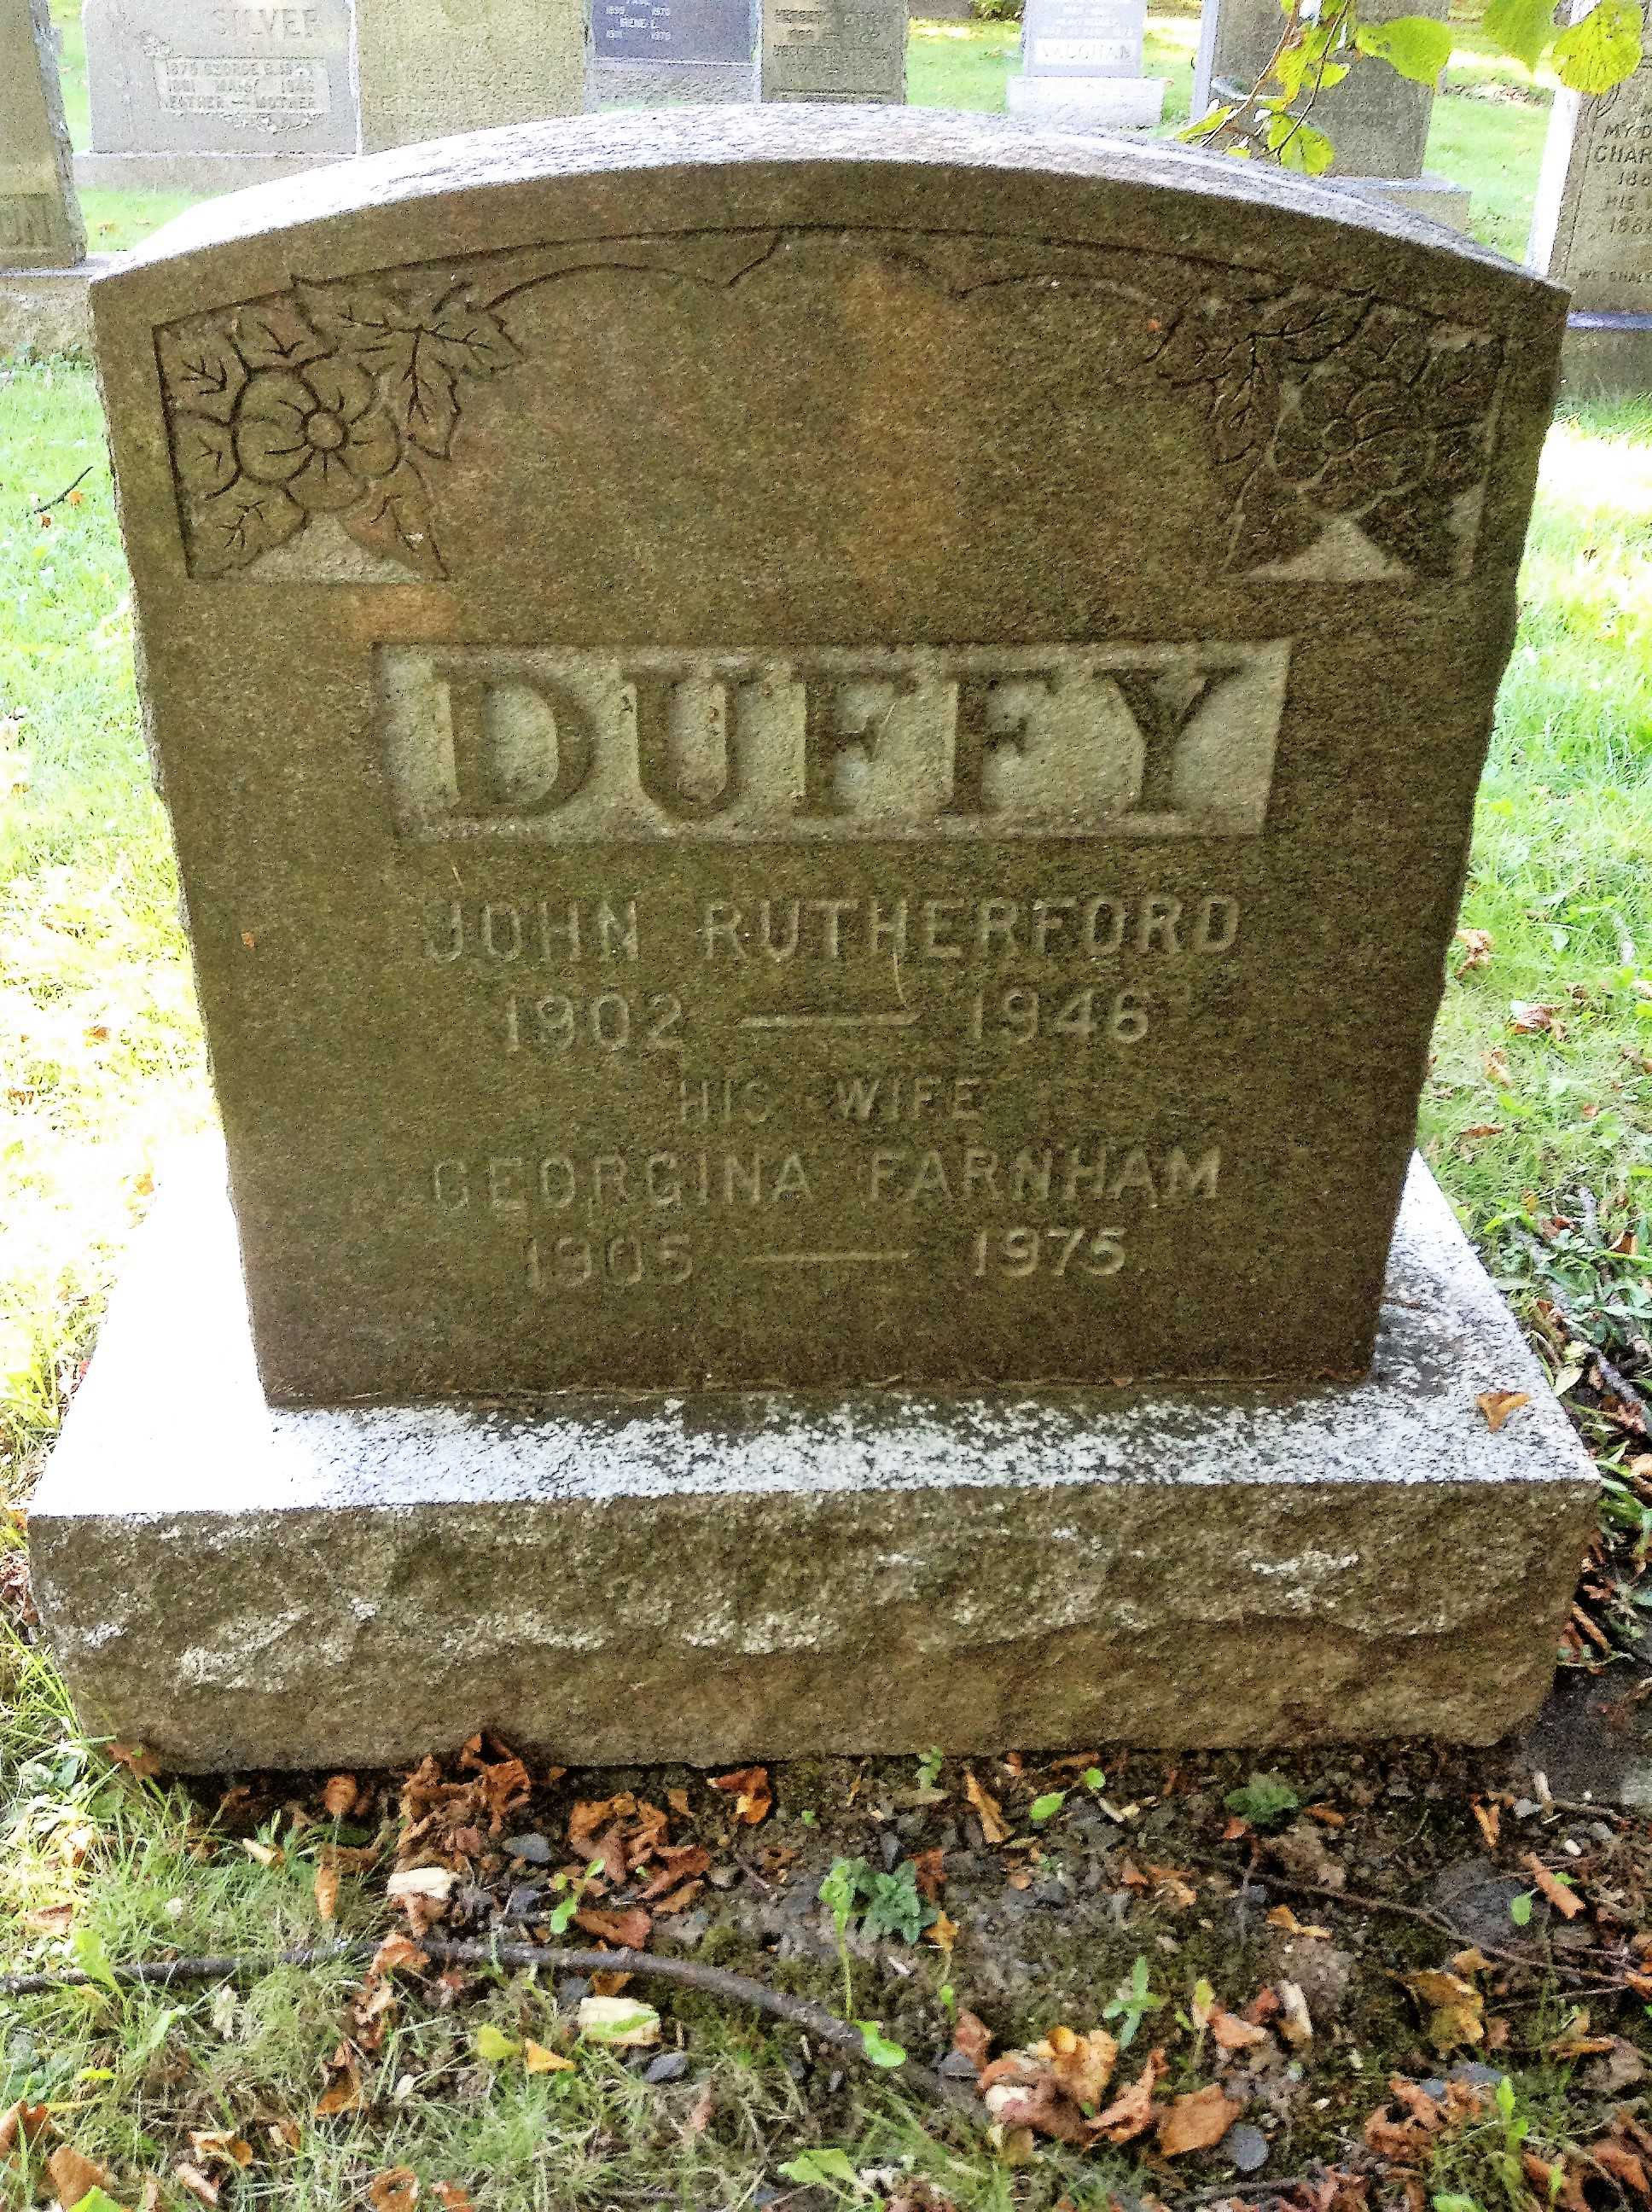 Grave Marker– Family grave marker with inscriptions for John Rutherford Duffy and his wife Georgina Farnham at Camp Hill Cemetery in Halifax, Nova Scotia.